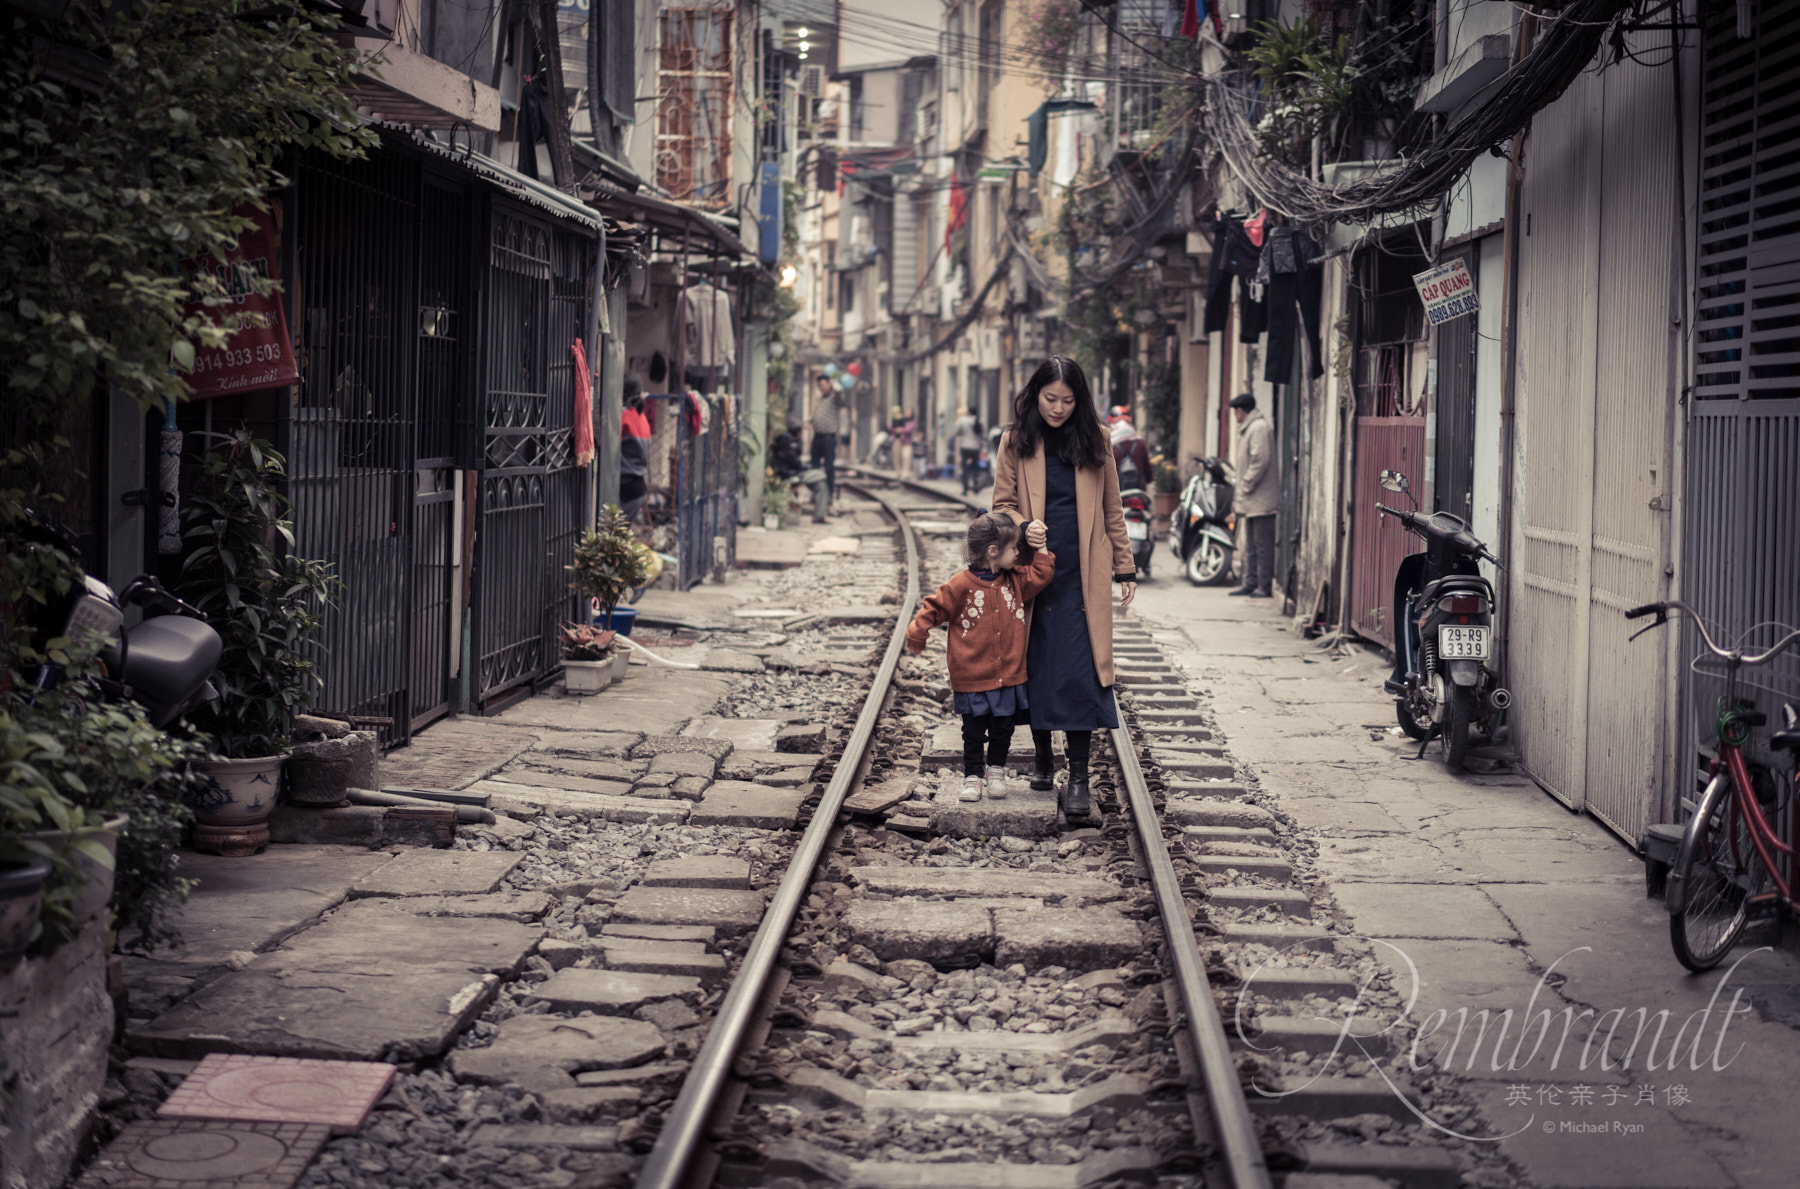 These tracks in Hanoi are special as there are only two trains a day so it was safe for us to walk along them at that hour. But usually it's quite a dangerous thing to do and every year many people die, so be careful.